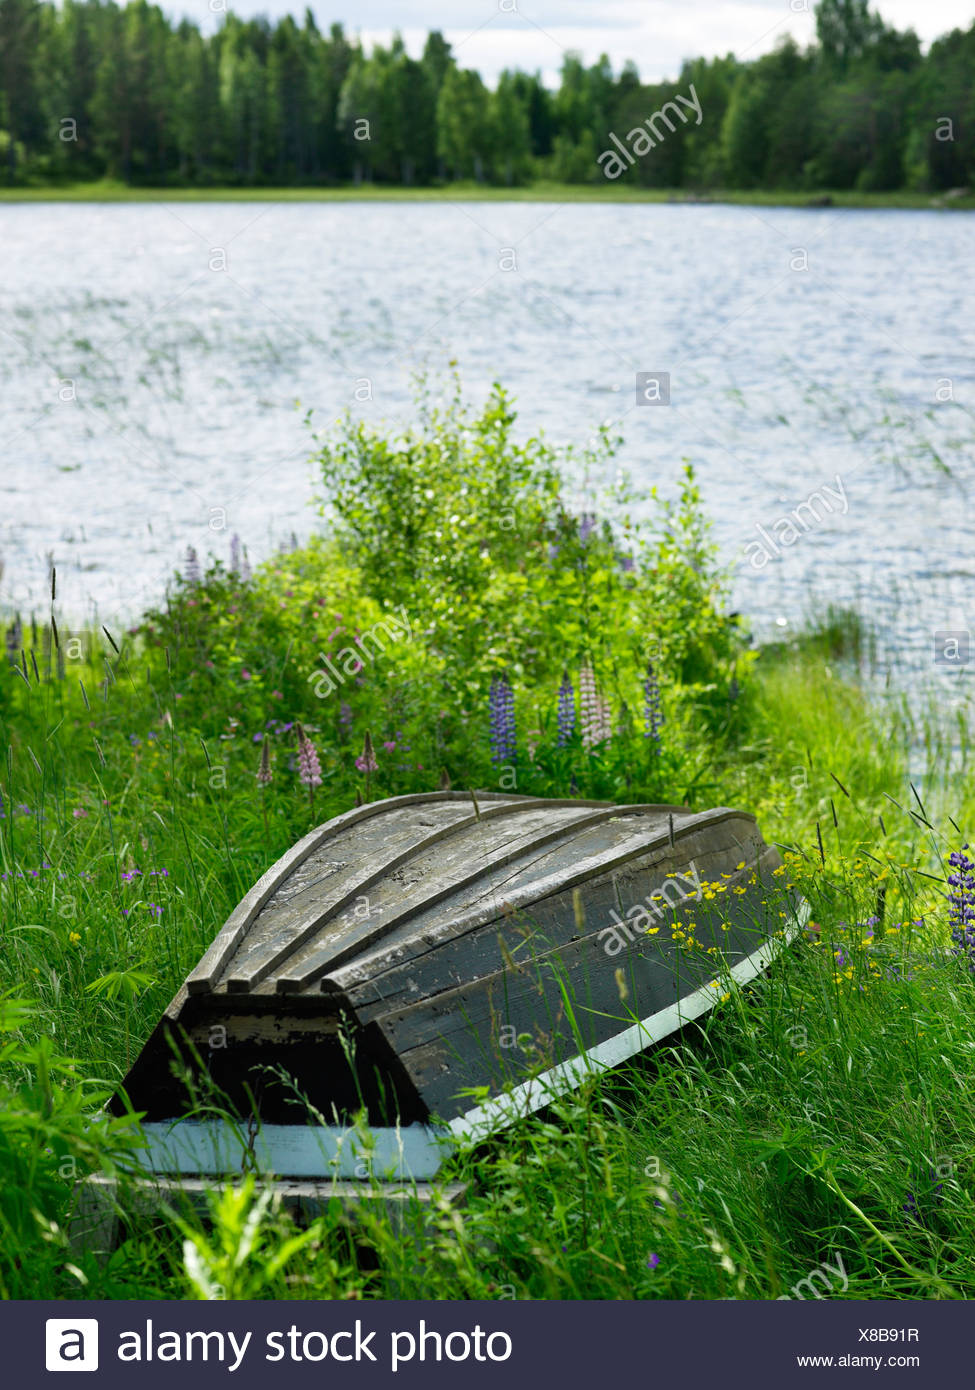 A boat upside down by a lake, Sweden. - Stock Image